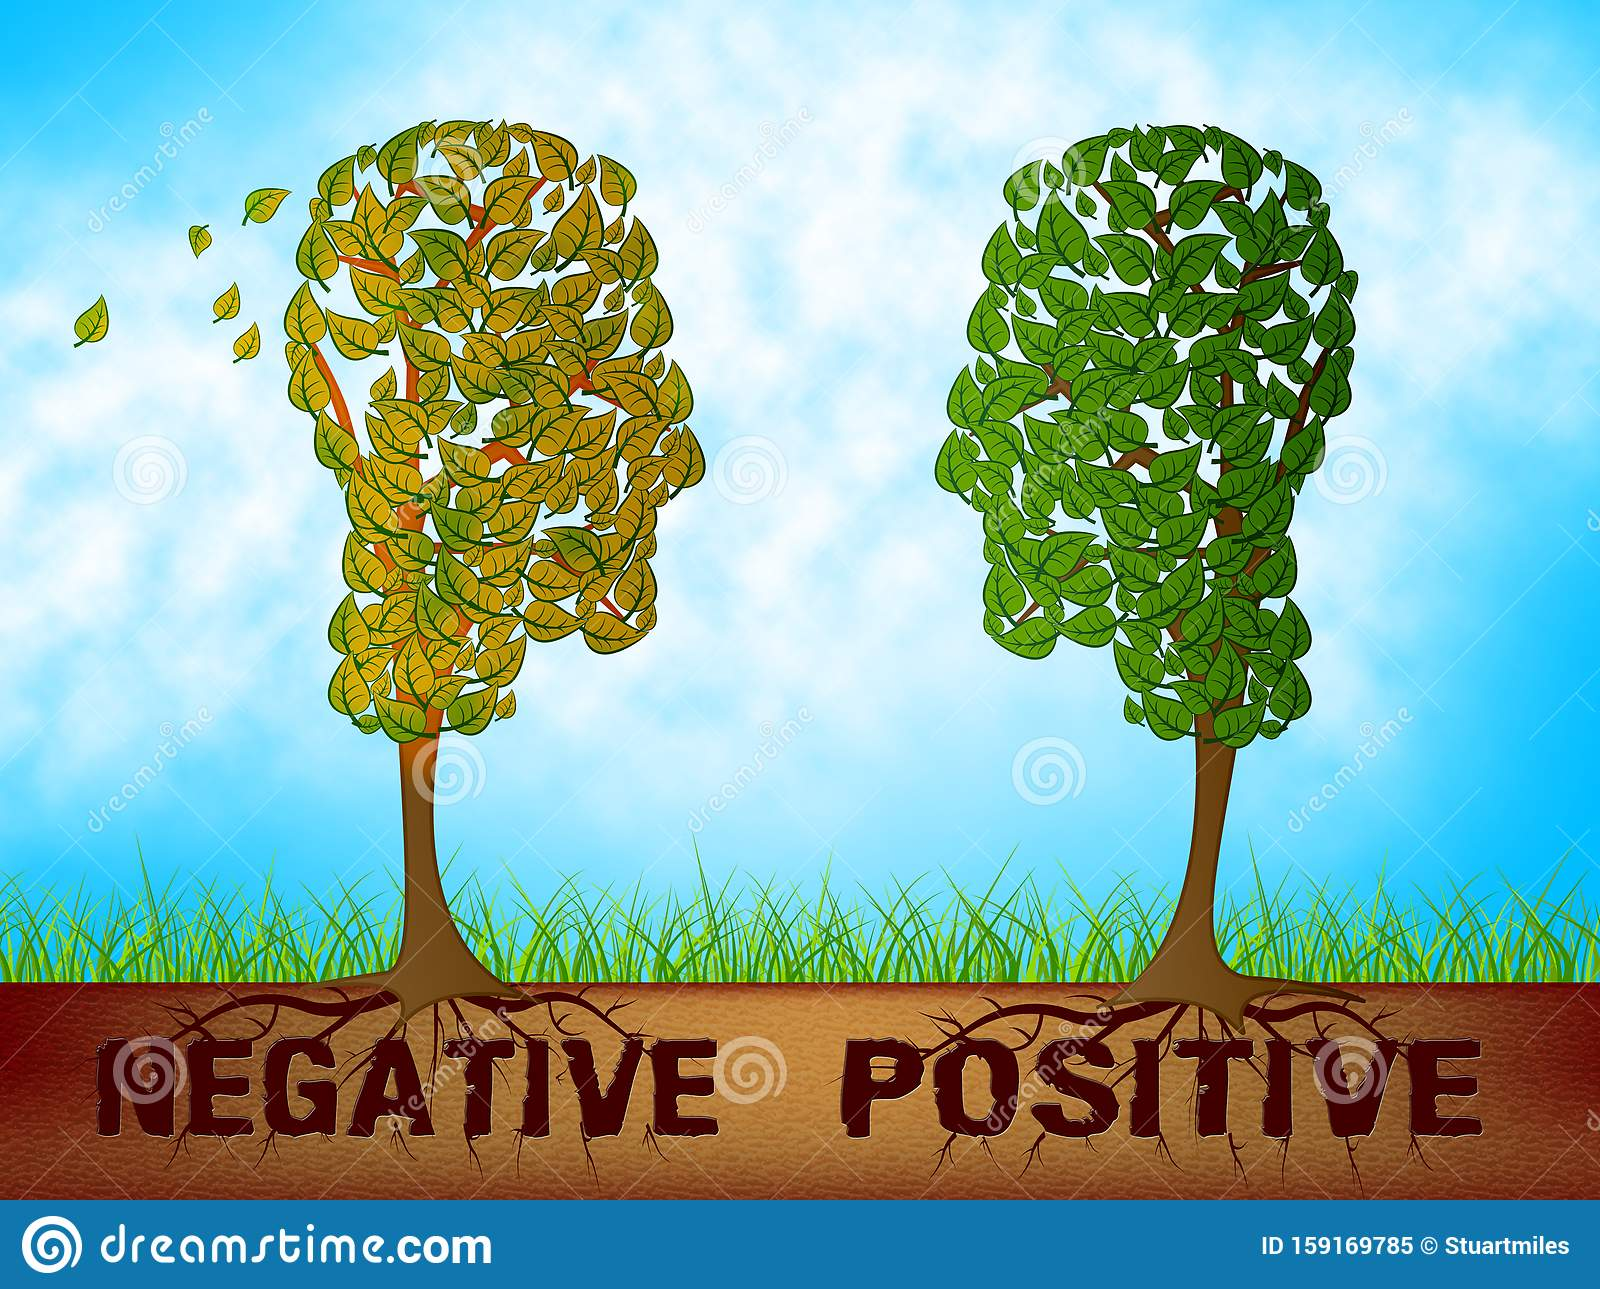 Positive Versus Negative Words Depicting Reflective State